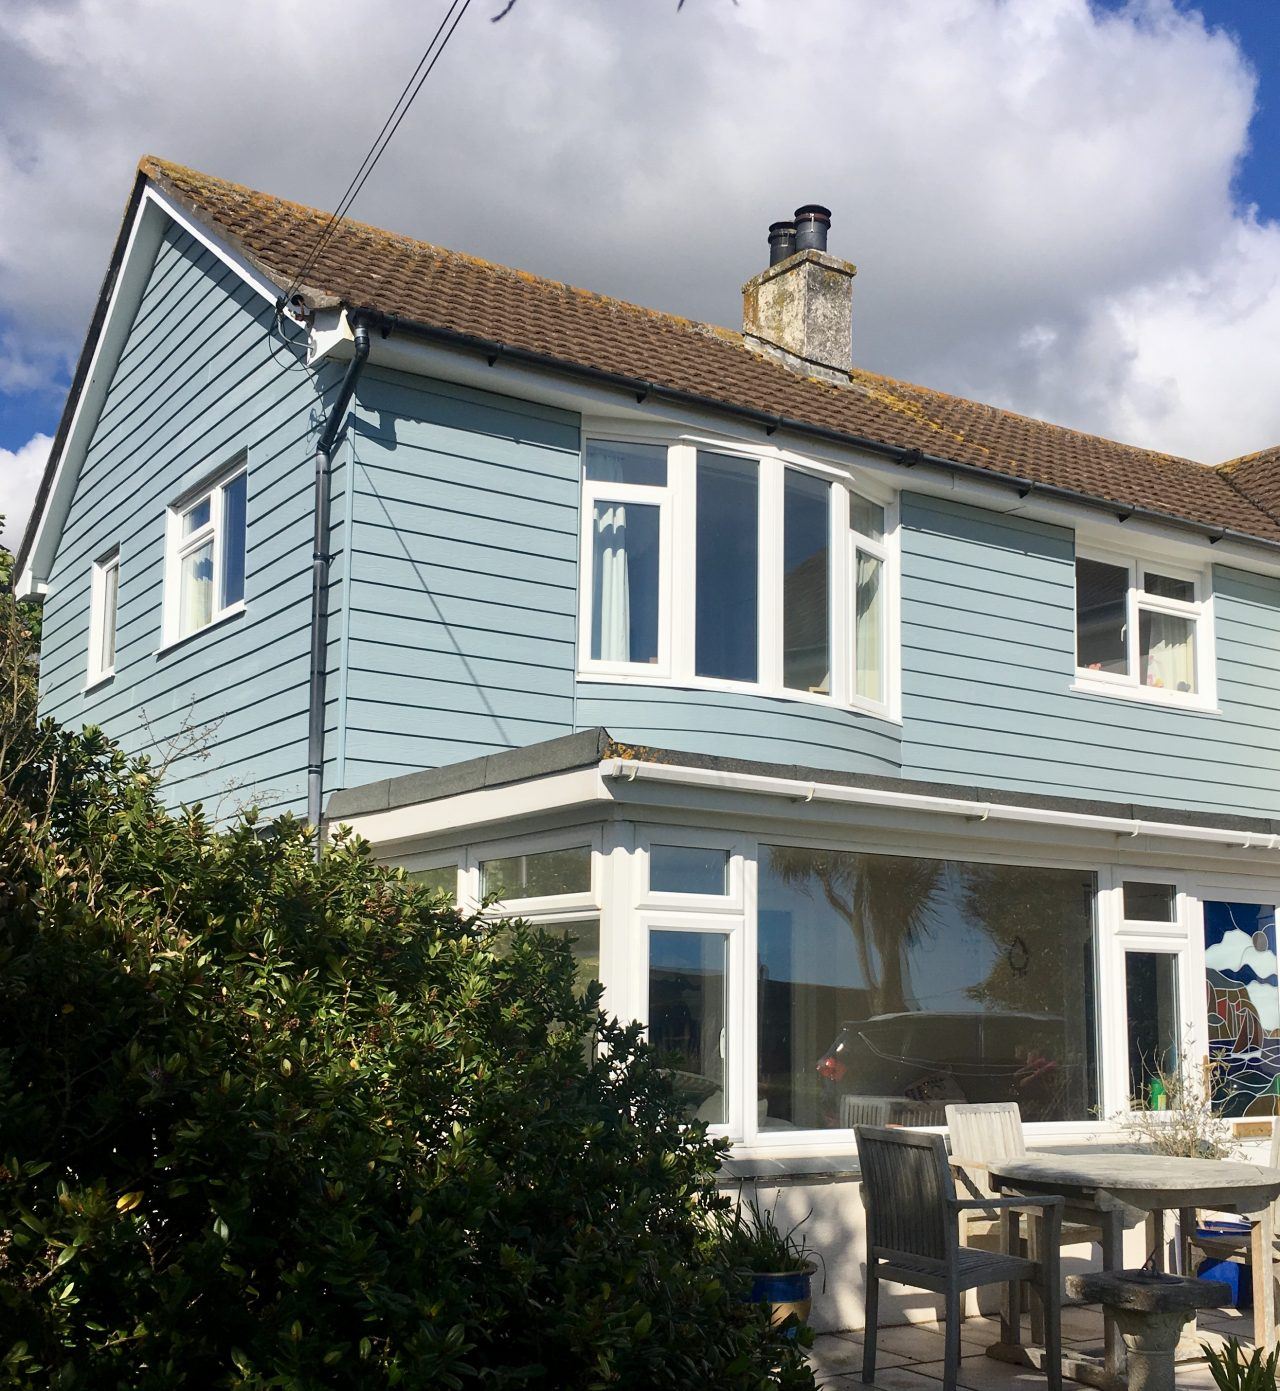 Blue Grey Cedral Cladding To A House In Praa Sands